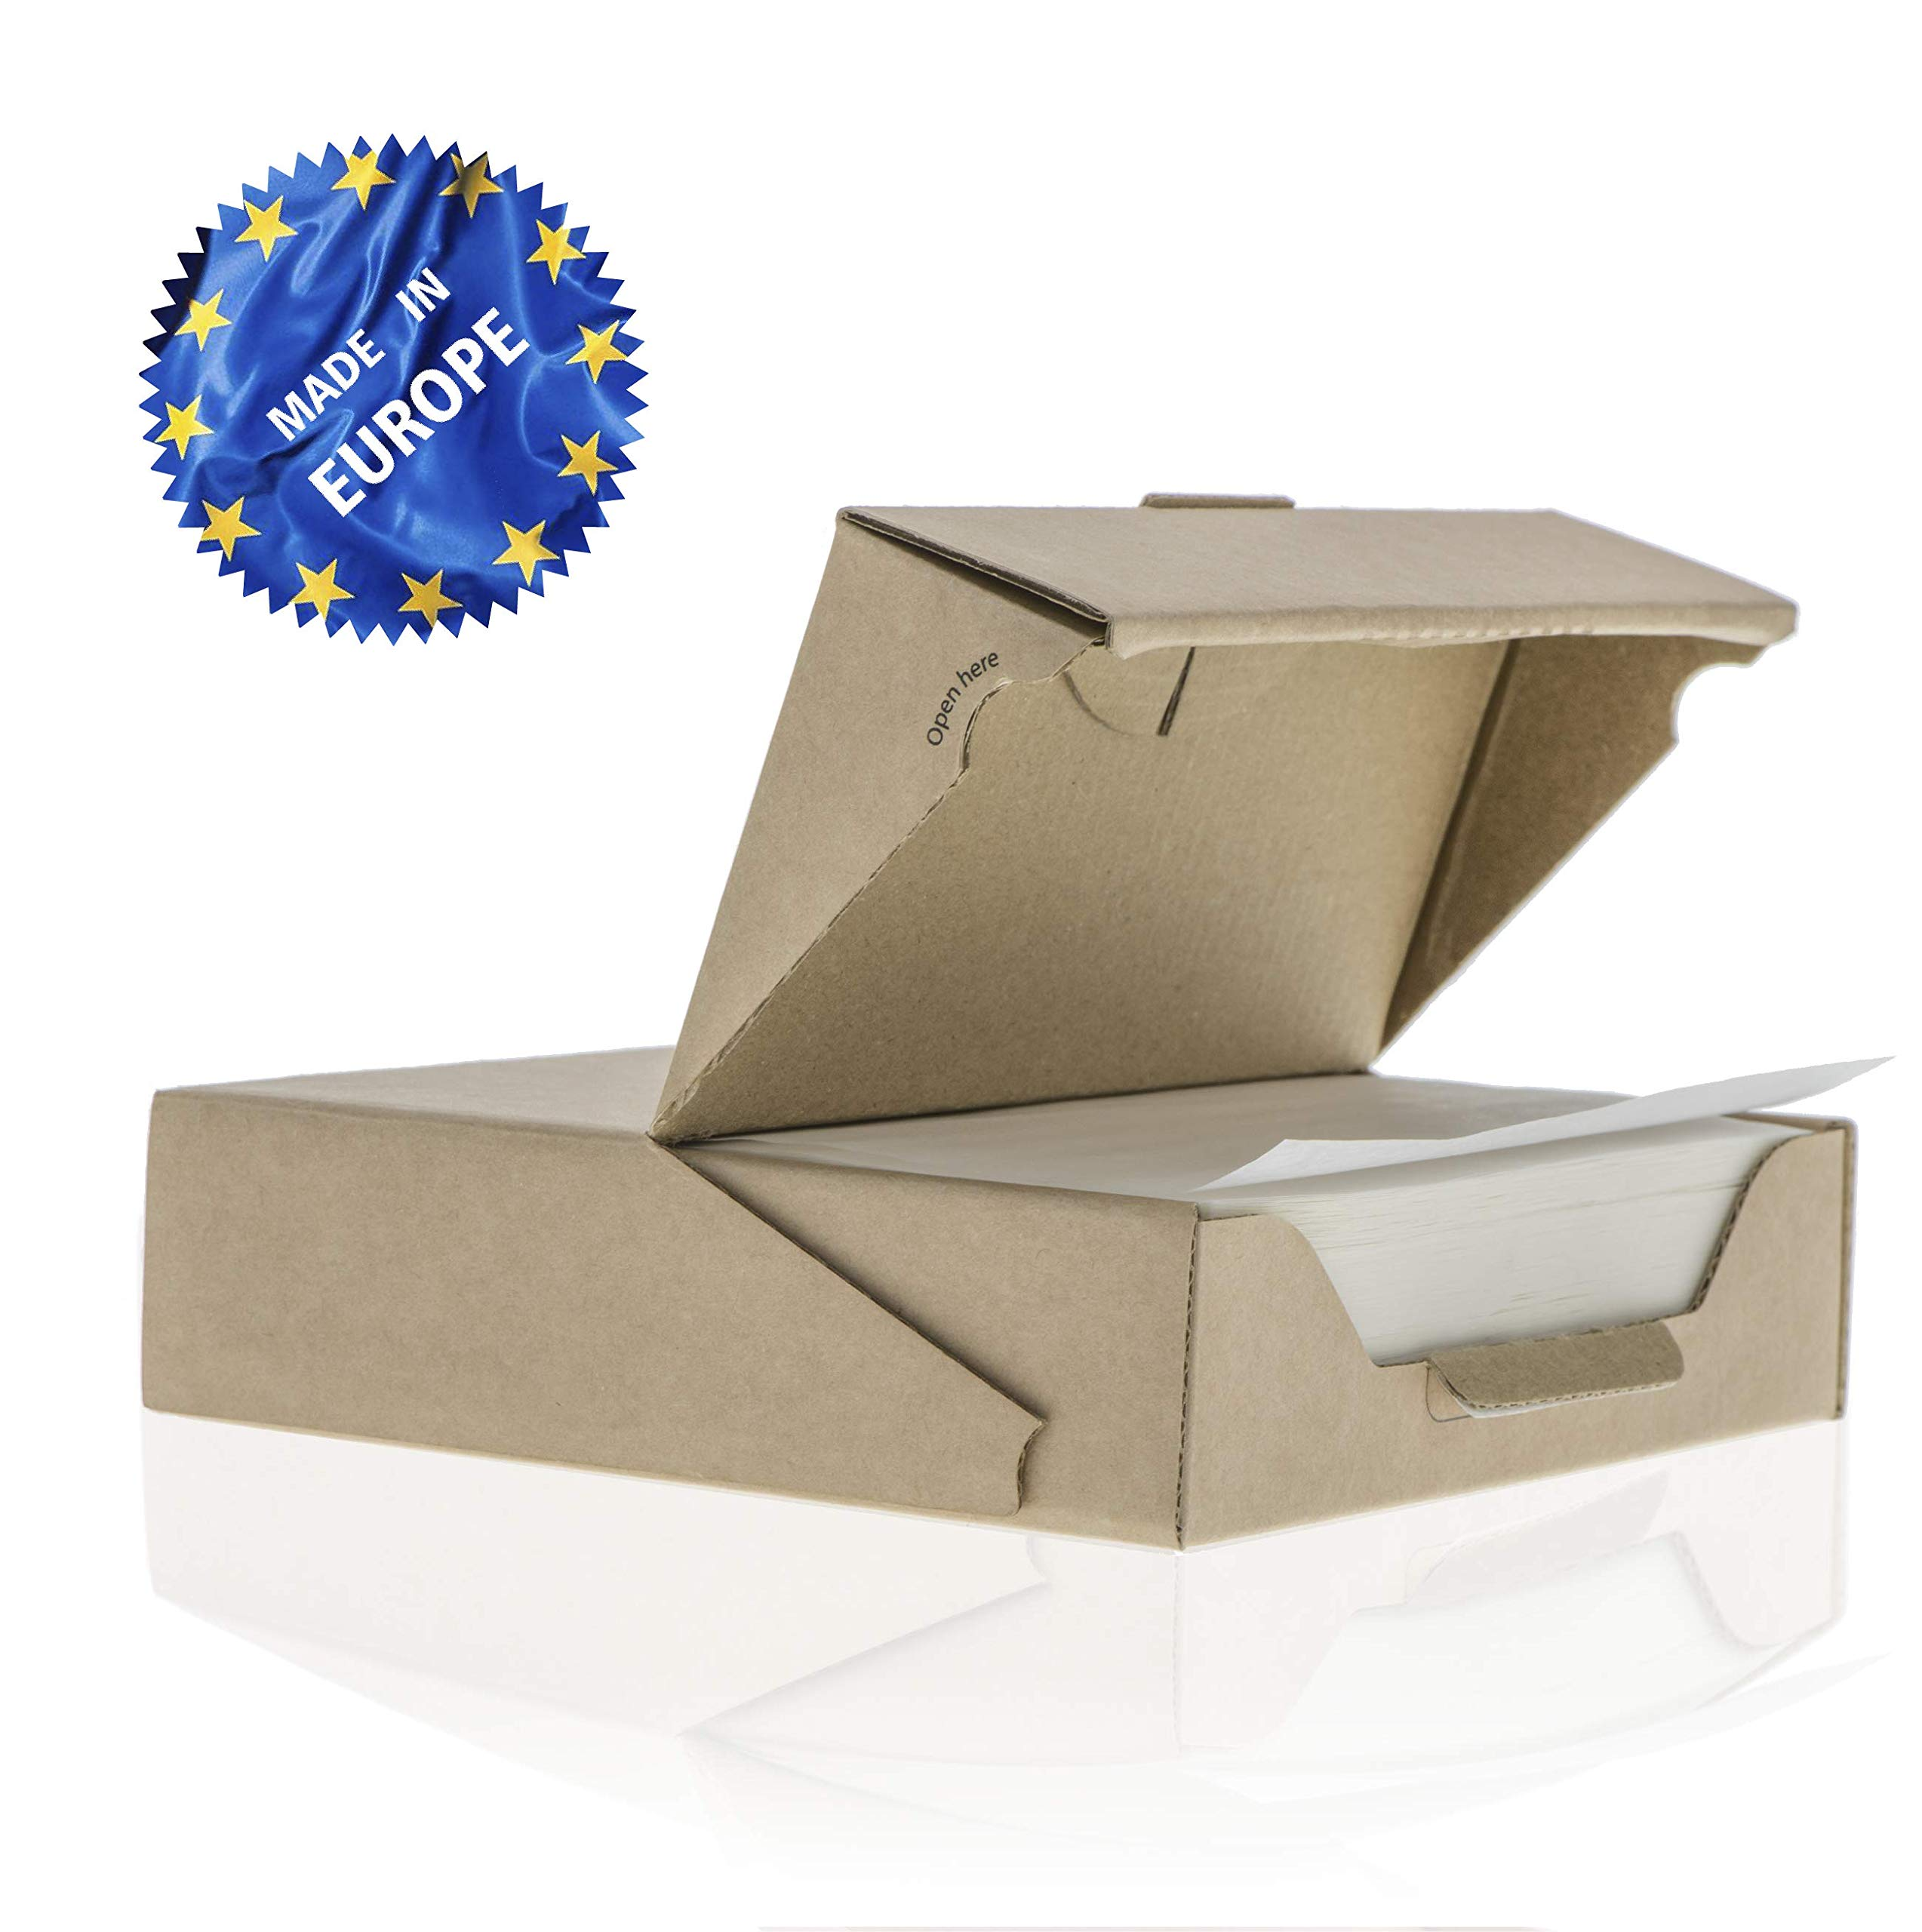 ZeZaZu Parchment Paper Squares - 5.5 x 5.5 inches (500 sheets) - MADE IN EUROPE - for Baking, Hamburger, Diamond Painting Craft | Dual-Sided Coating, Non-stick, Siliconized, Convenient Dispenser Box by ZEZAZU